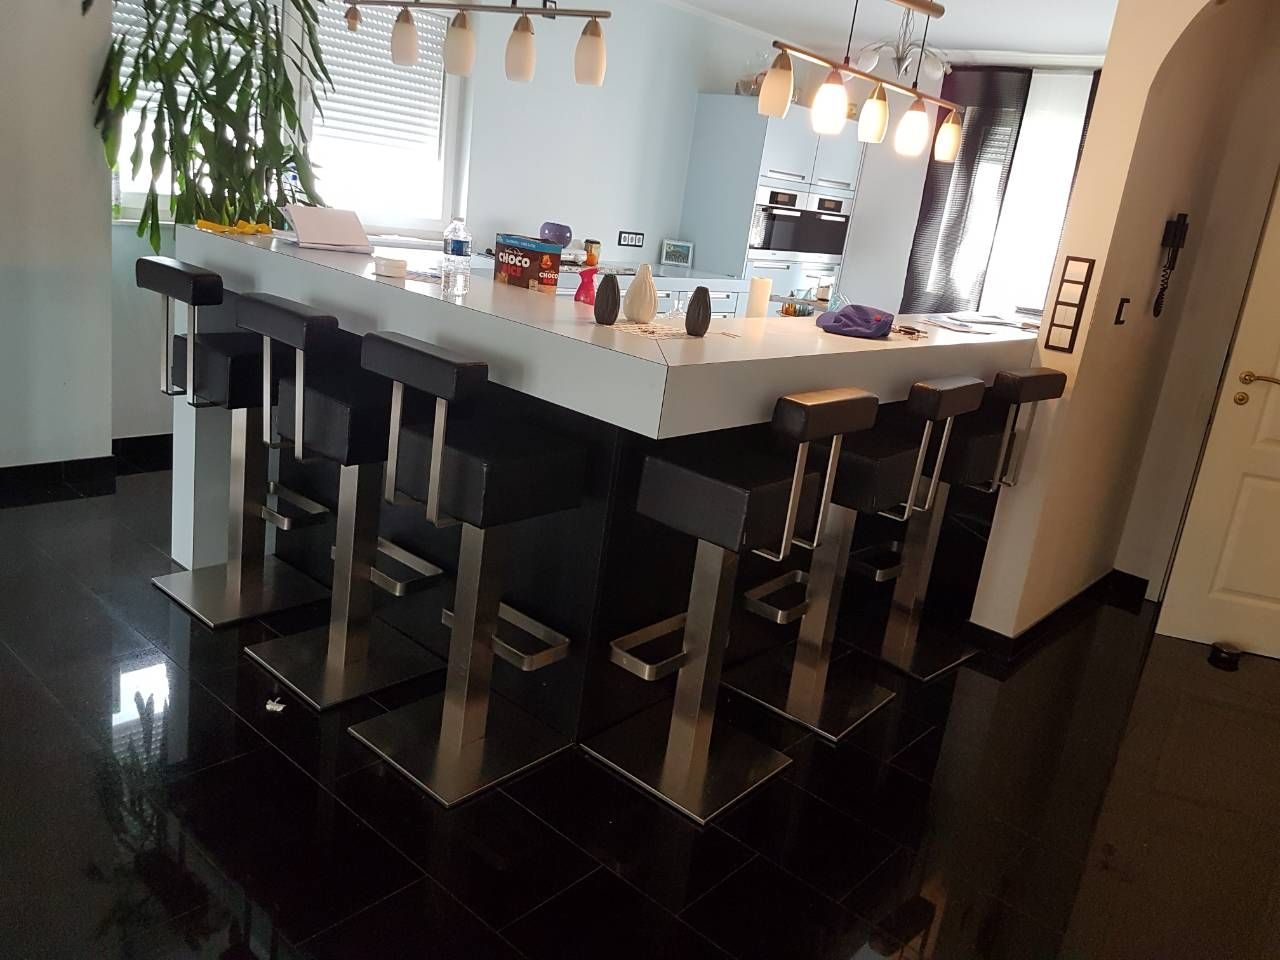 Cuisine Equipee D Occasion Second Hand Kitchen On Shop Cuisine Equipee Cuisine A Vendre